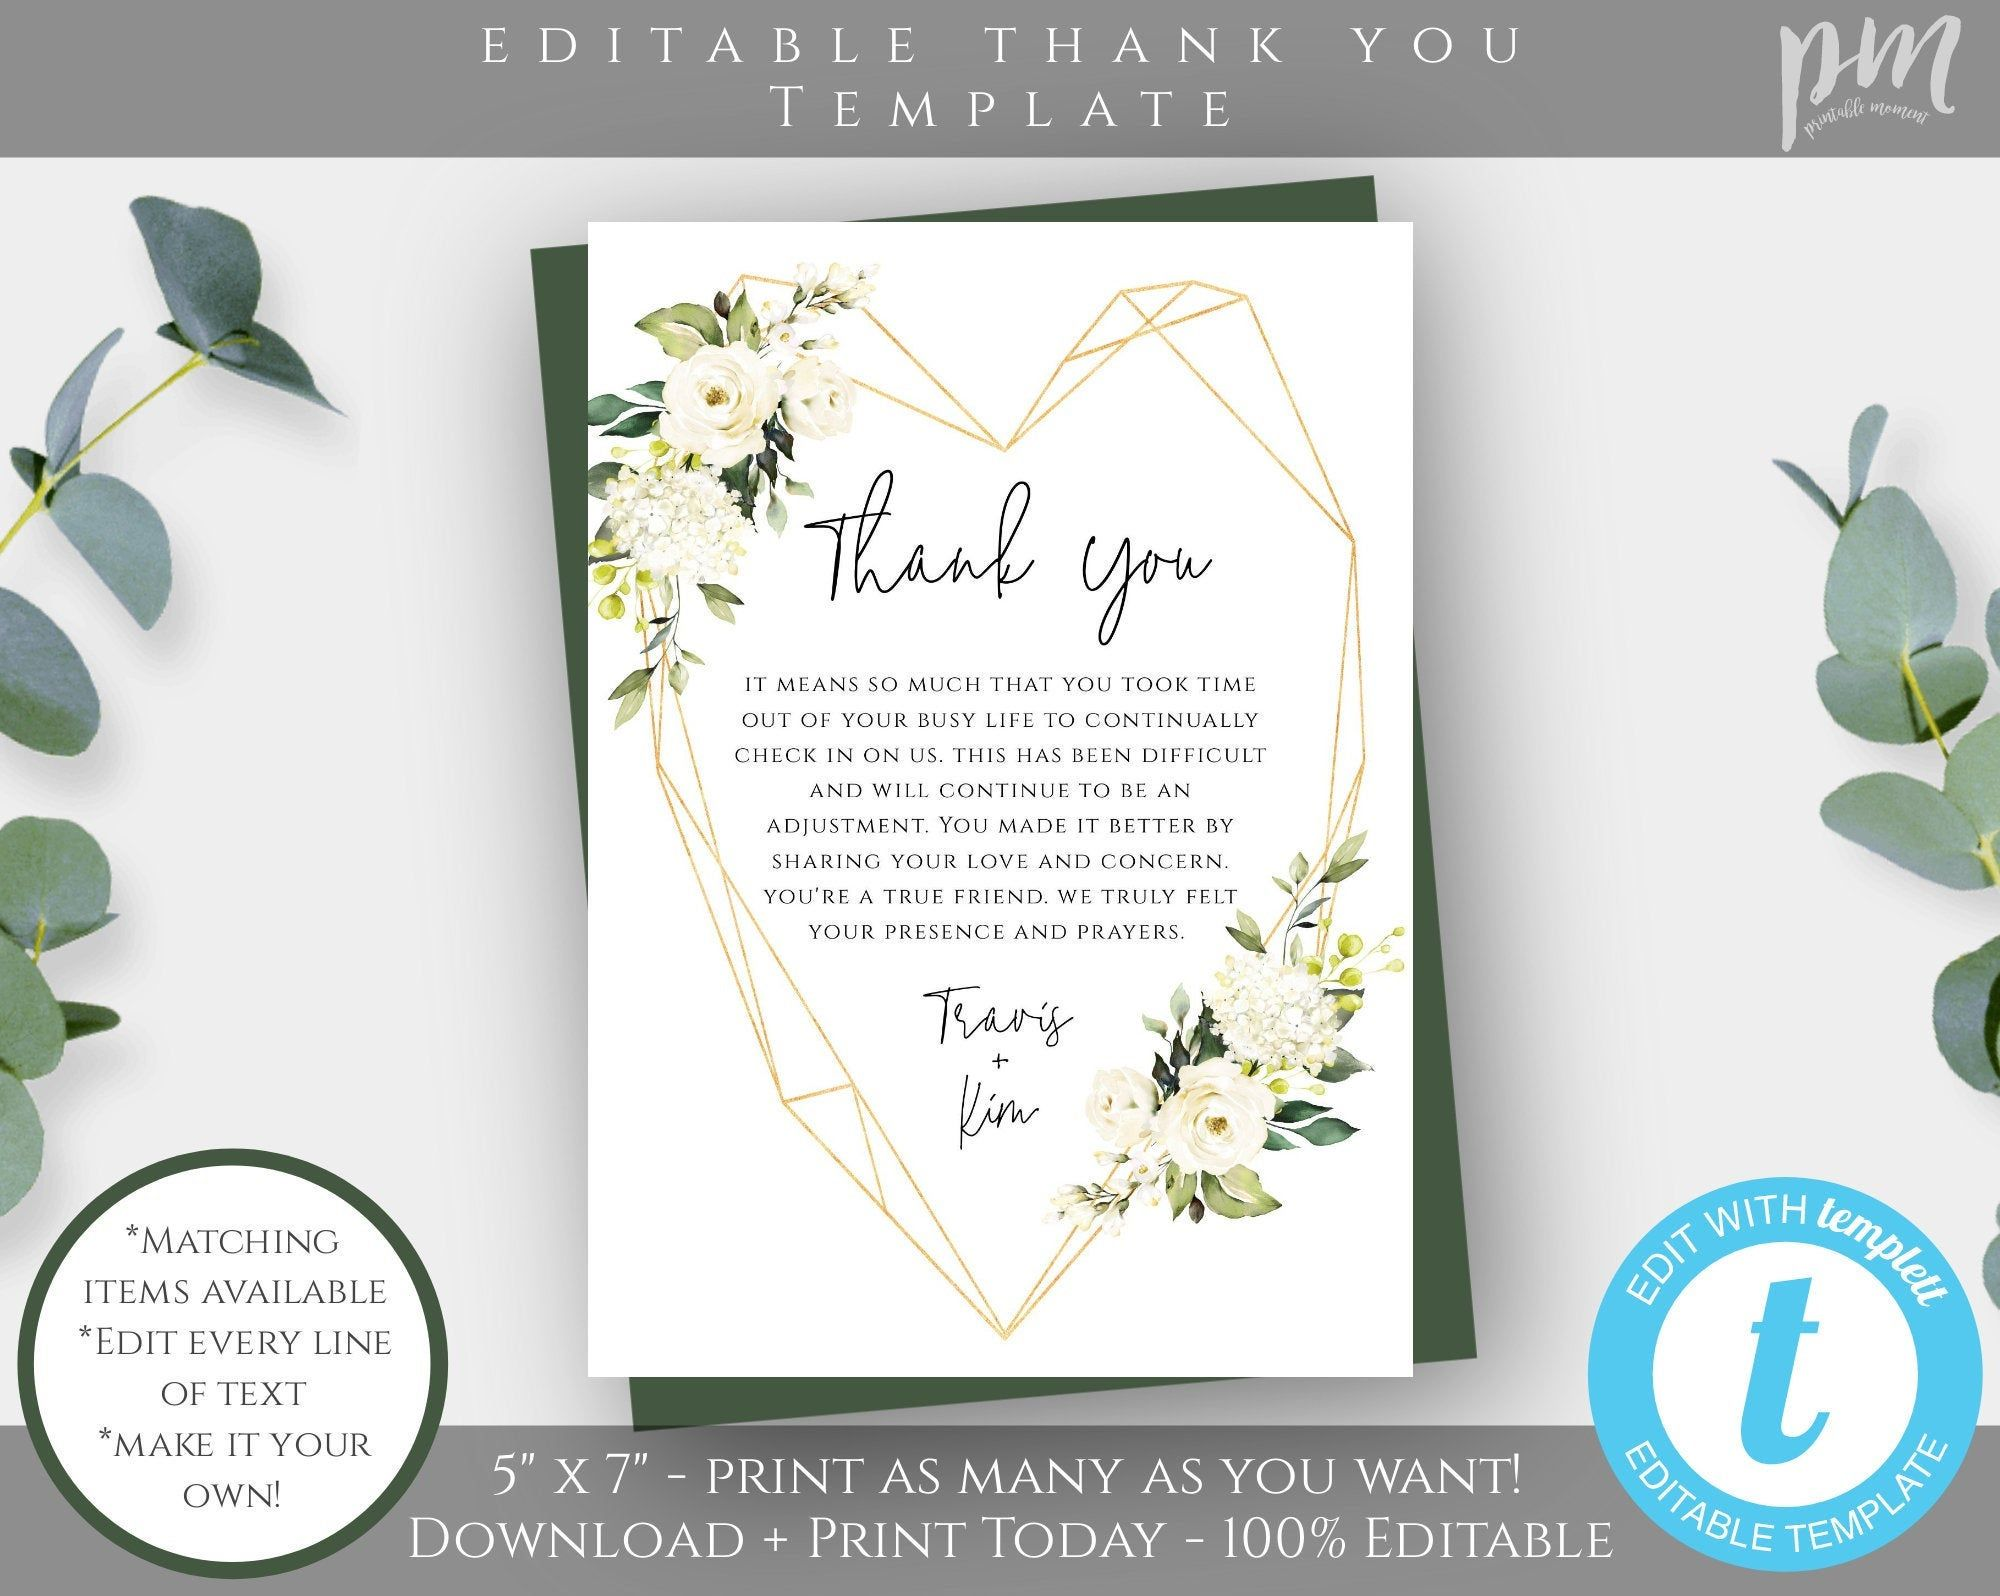 White Floral Funeral Thank You Card Template 5x7 Greenery Etsy Funeral Thank You Cards Thank You Card Template Funeral Thank You